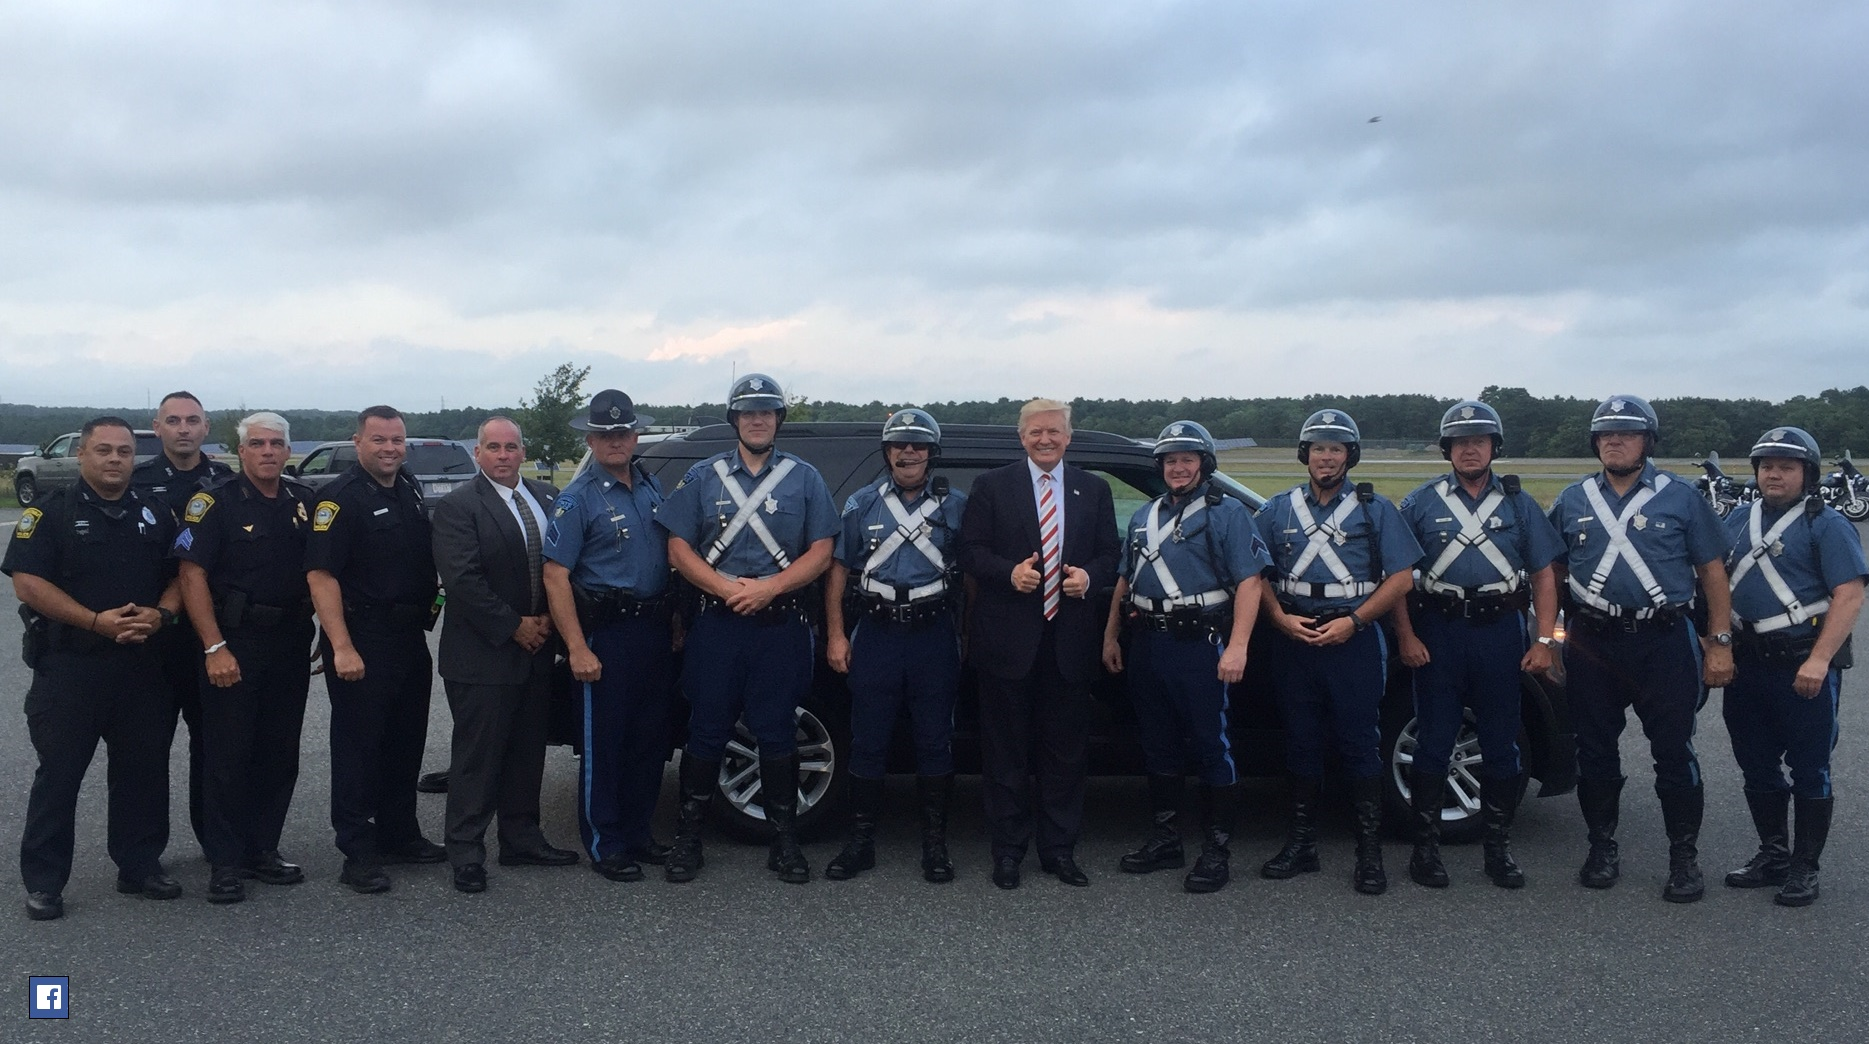 SHARP PHOTO: Trump takes time to pose with local members of protection detail…